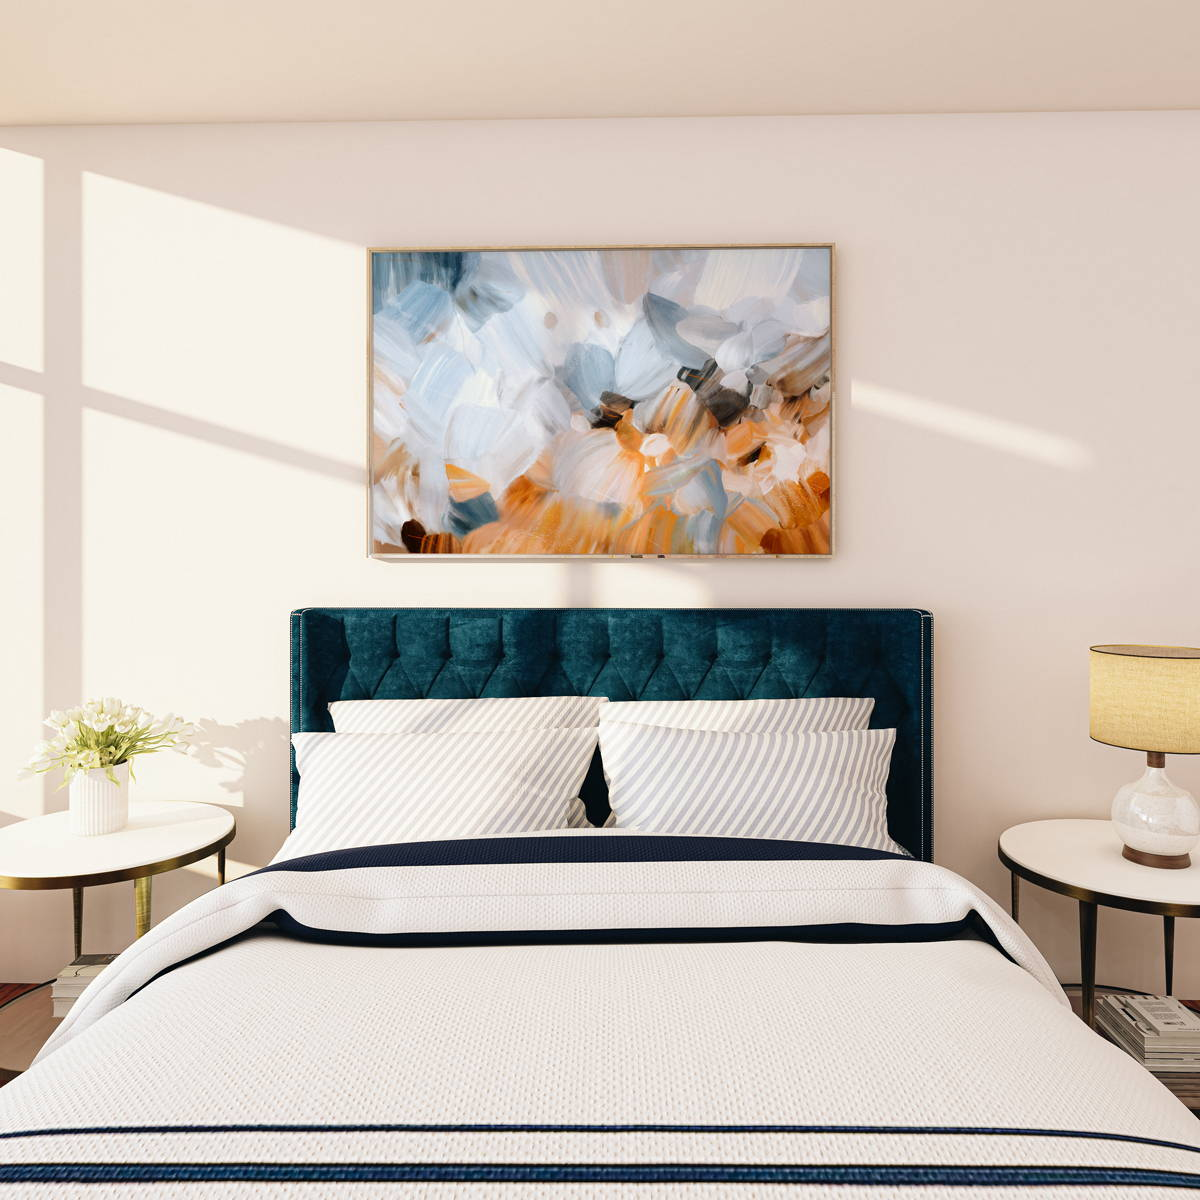 Light blue abstract wall art over a king bed. Grasslands, limited edition print on canvas - 60